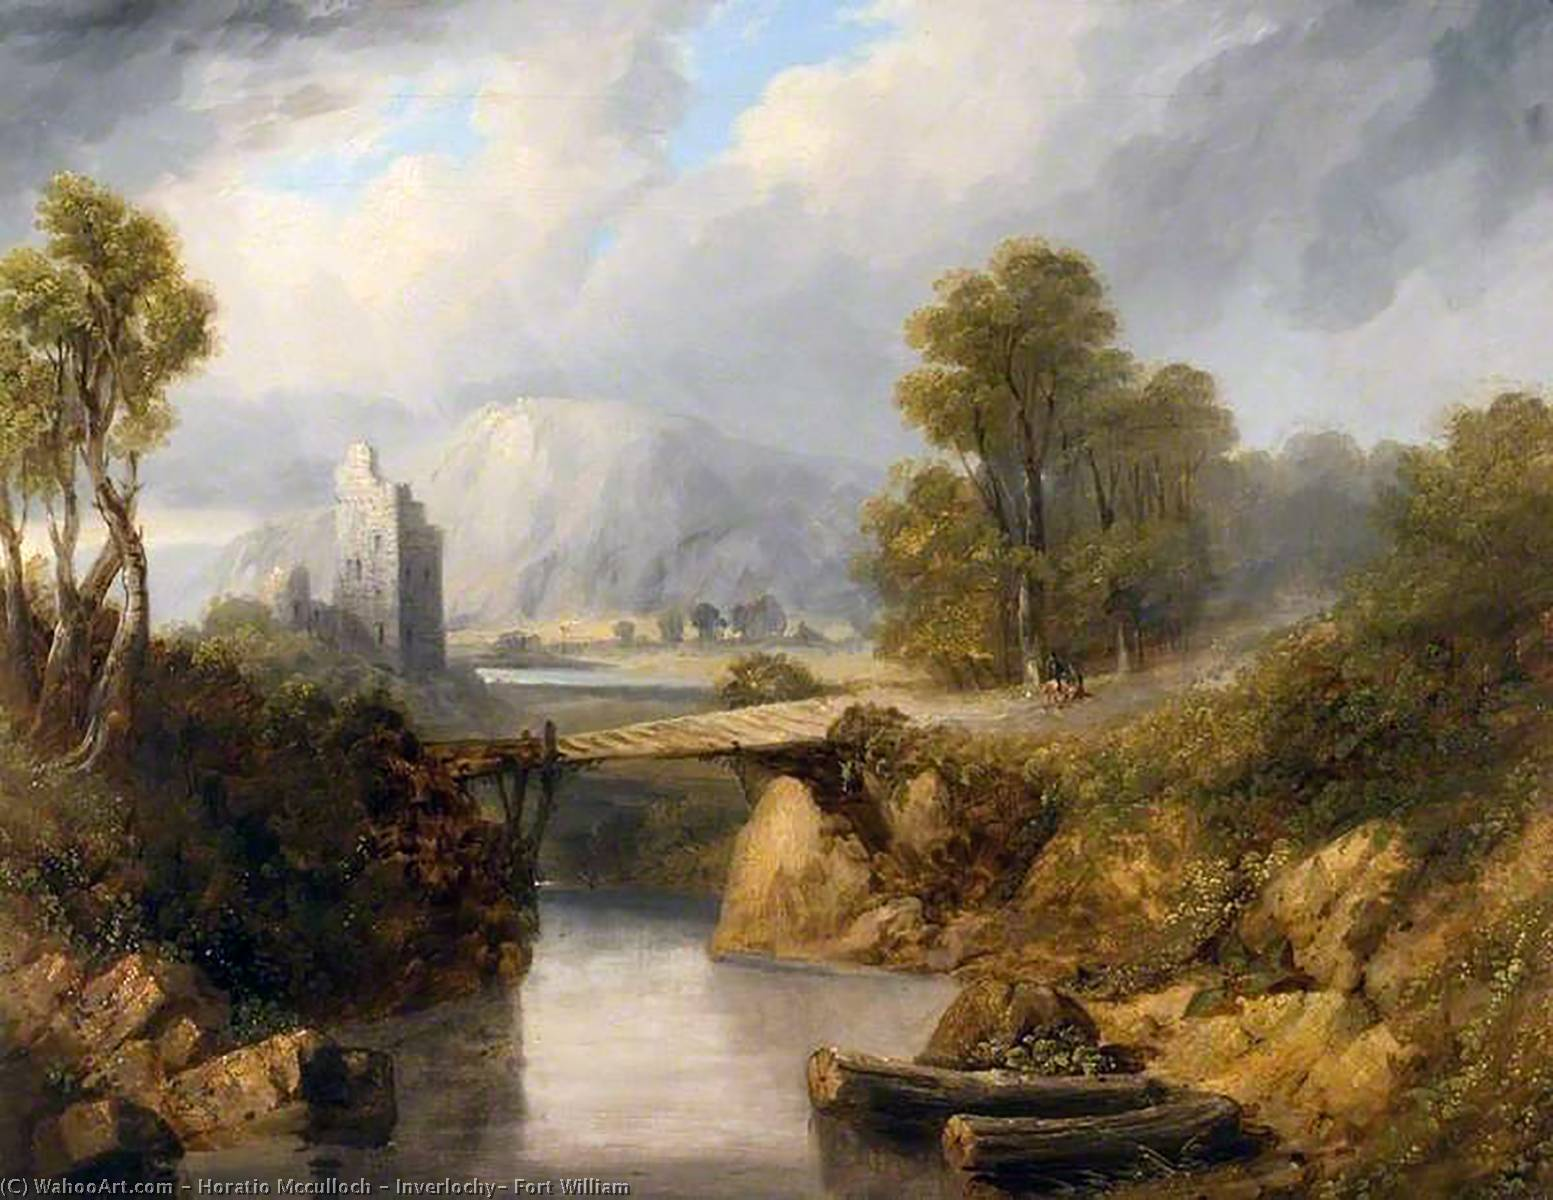 Inverlochy, Fort William by Horatio Mcculloch (1805-1867, United Kingdom) | Reproductions Horatio Mcculloch | WahooArt.com